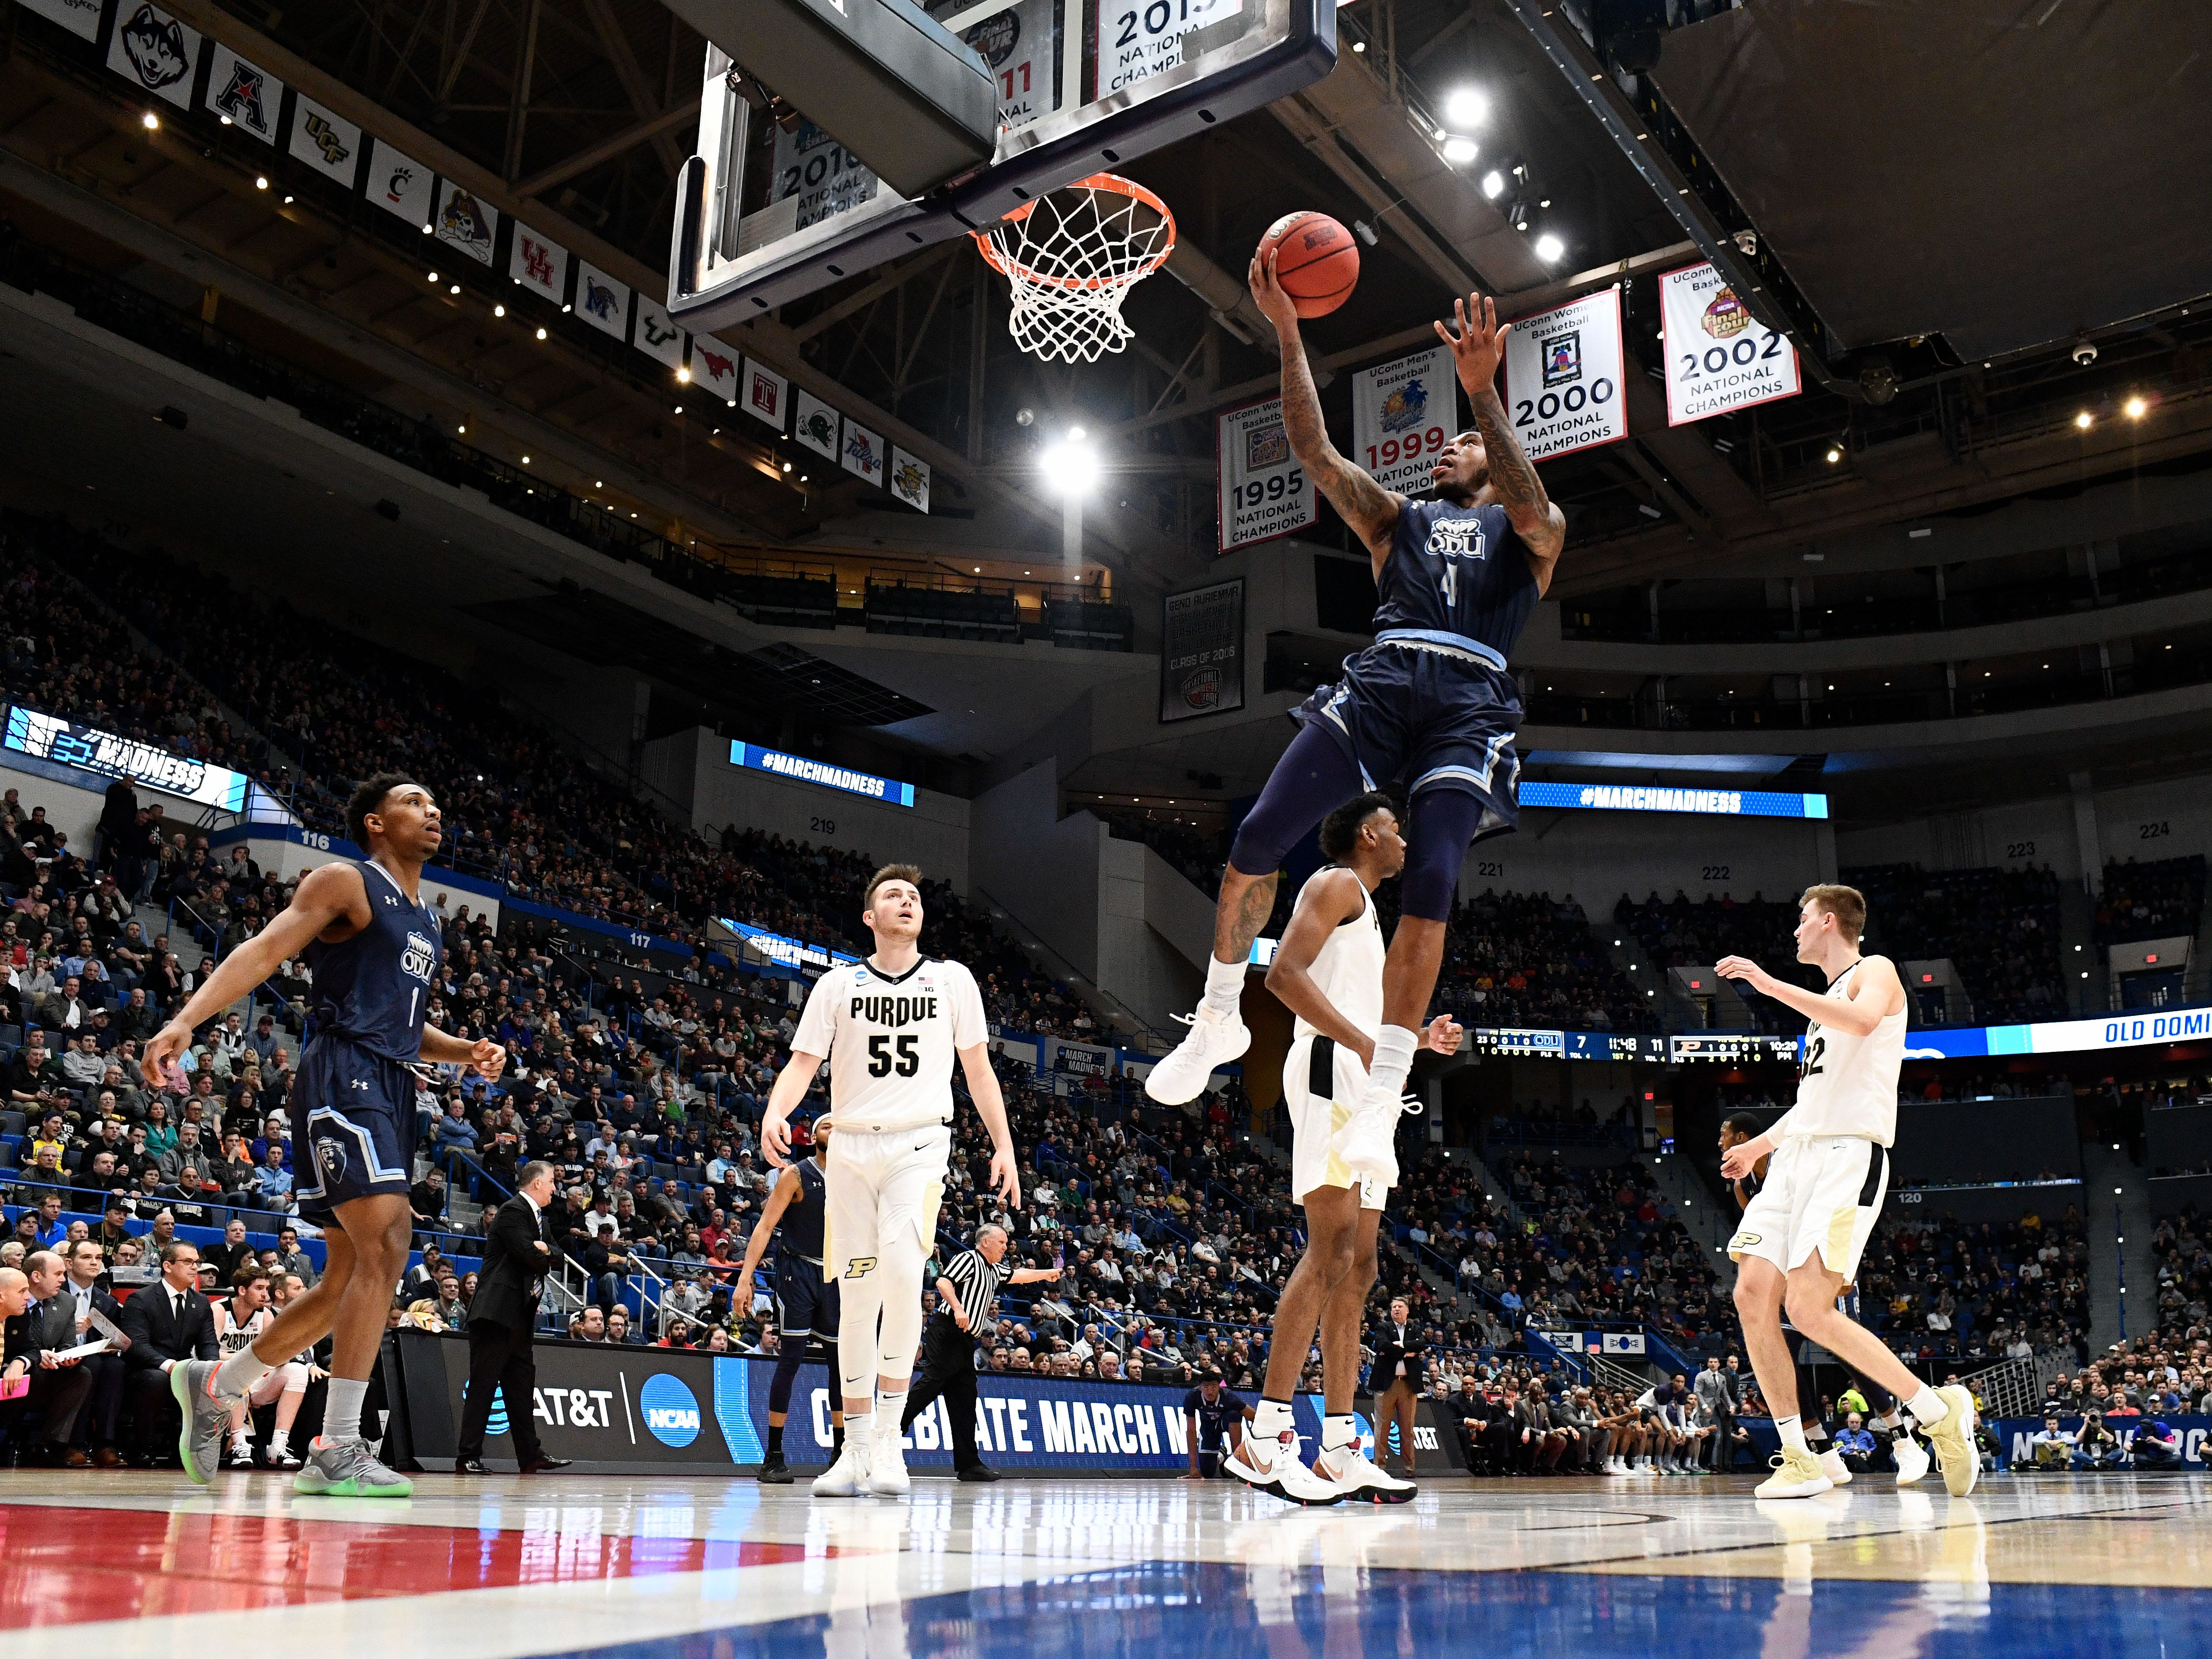 Mar 21, 2019; Hartford, CT, USA; Old Dominion Monarchs guard Ahmad Caver (4) attempts a shot against the Purdue Boilermakers during the first half of a game in the first round of the 2019 NCAA Tournament at XL Center. Mandatory Credit: Robert Deutsch-USA TODAY Sports